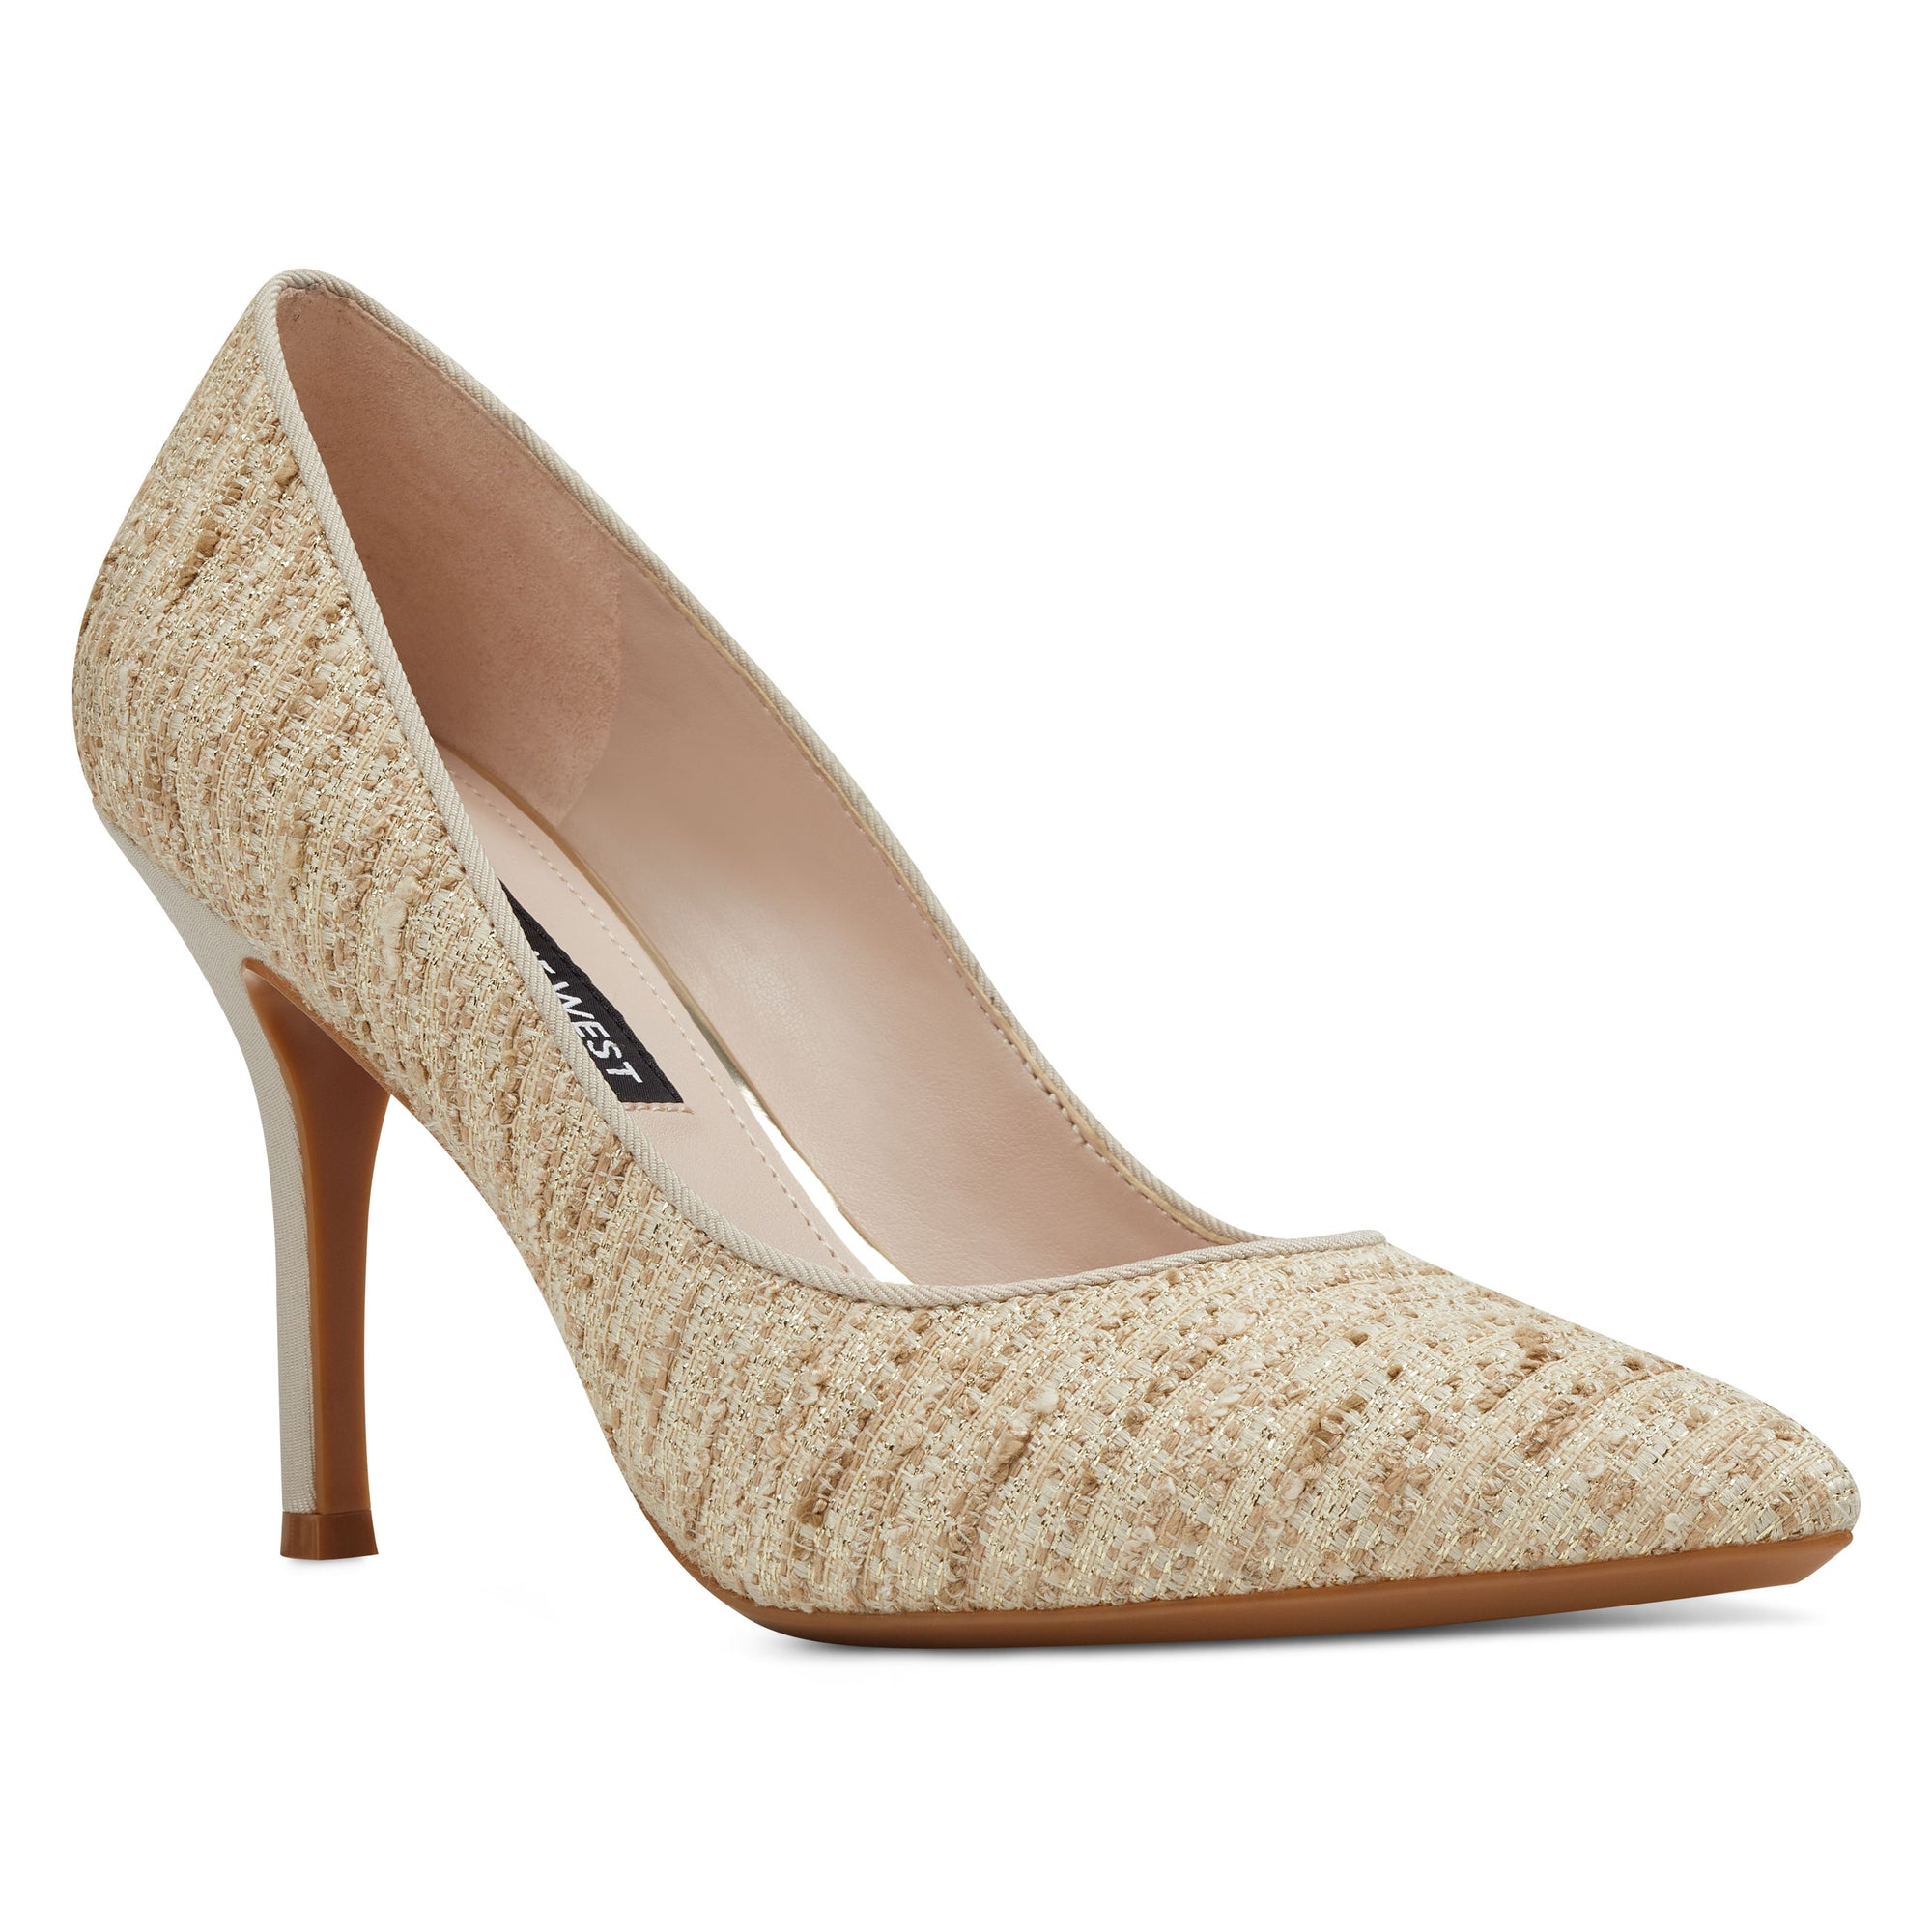 Fifth Pointy Toe Pumps - Nine West